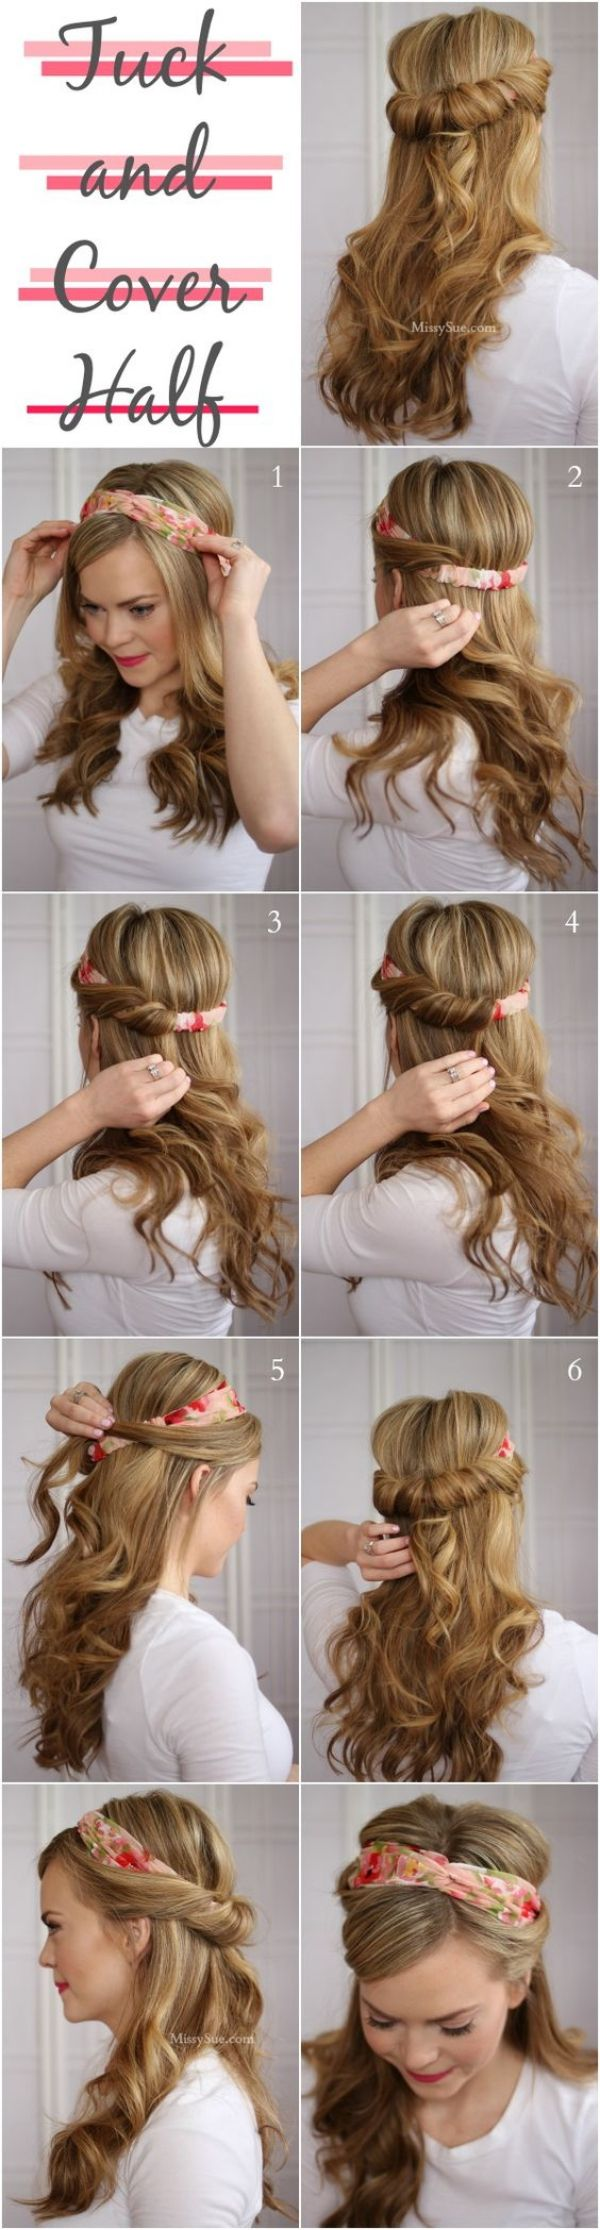 hairstyles that can be done in minutes easy hairstyles